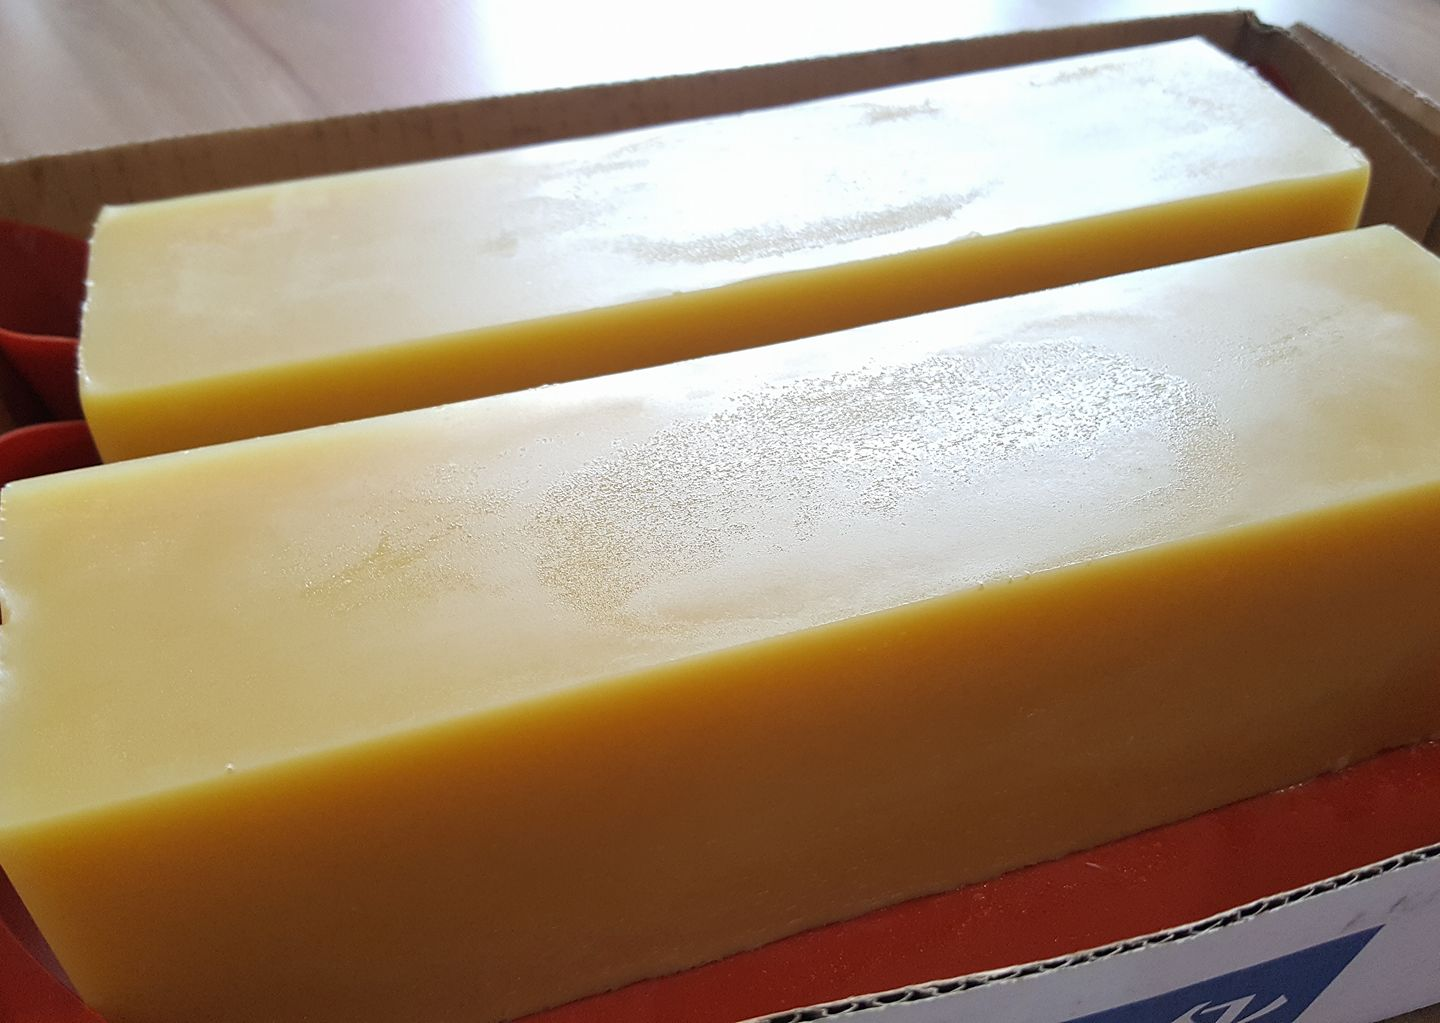 ฺBastile soap (Extra Virgin Olive Oil 70 %)